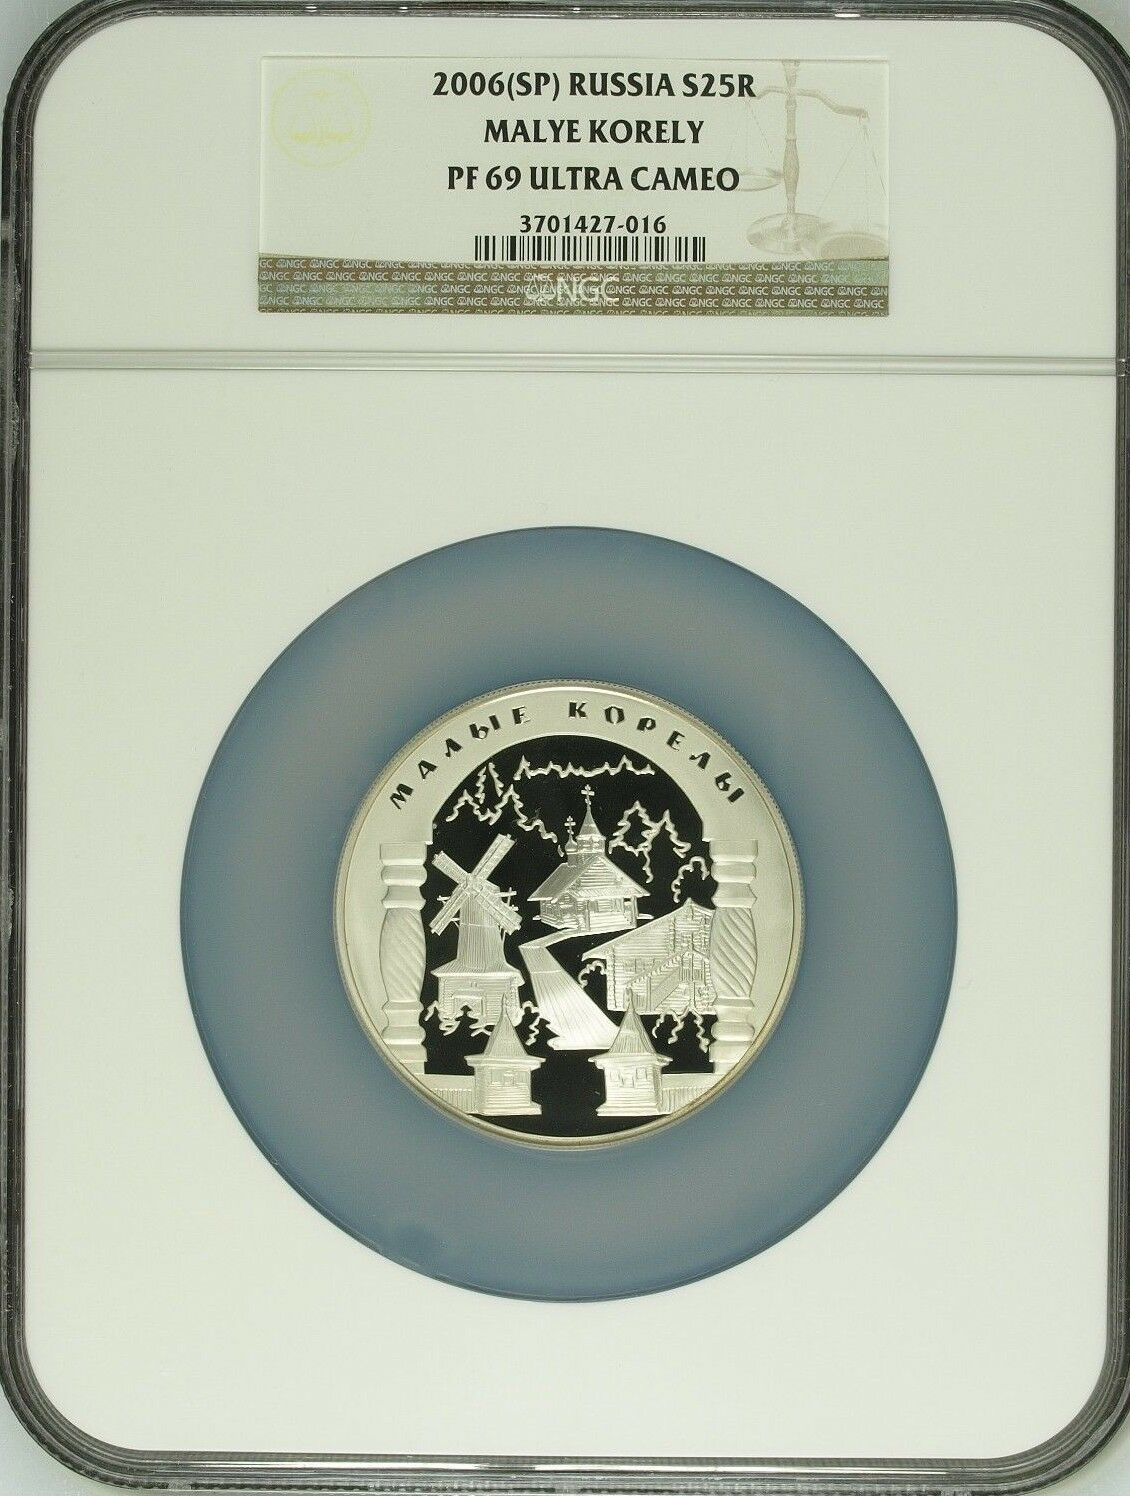 2006 Russia 5 oz Silver Coin 25 Roubles Malye Korely Mill NGC PF69 Low Mintage